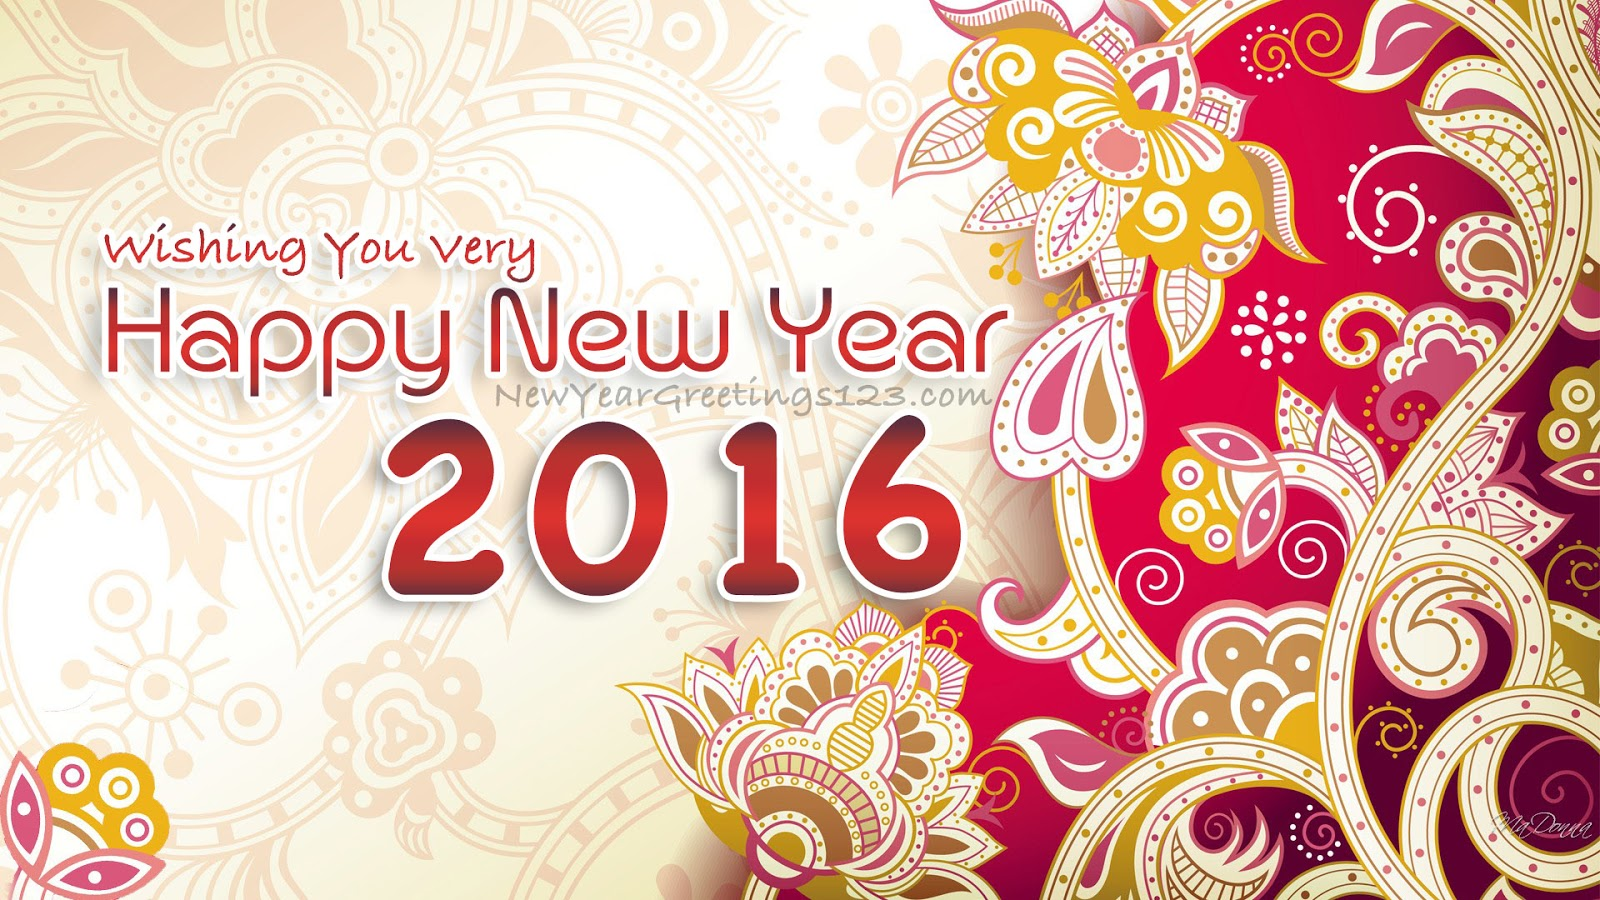 Happy New Year 2016 Cards | Happy New Year 2017